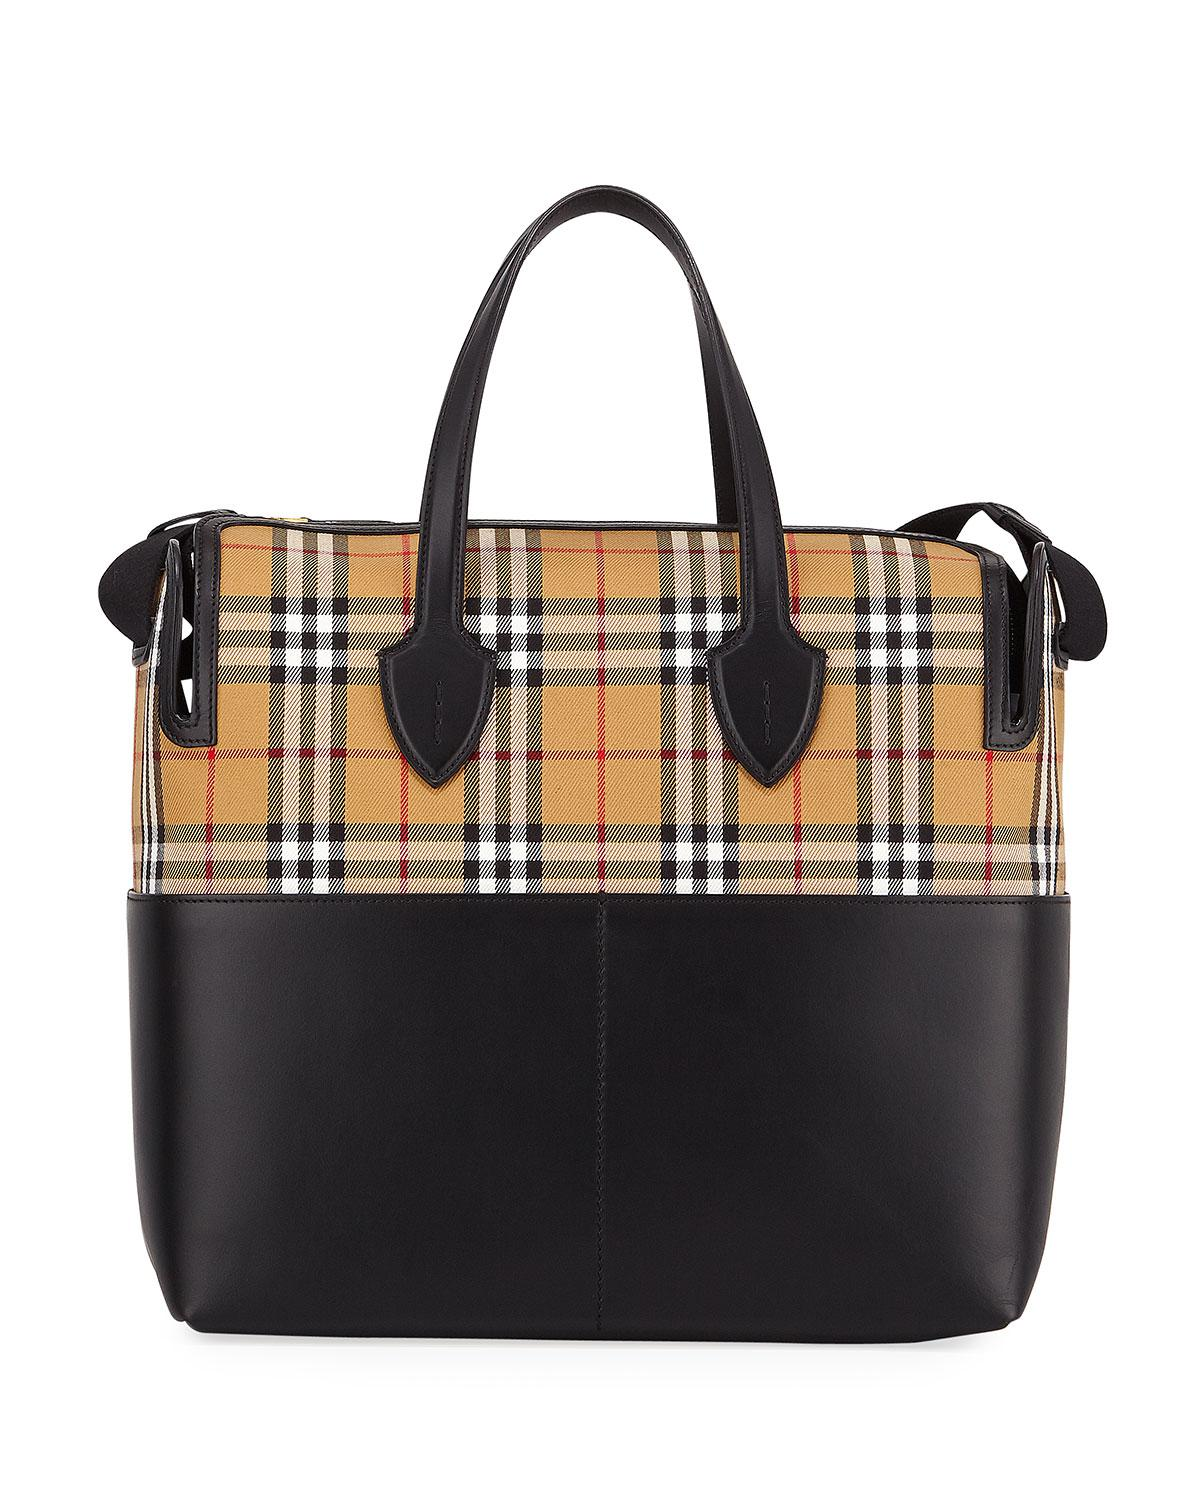 Lyst - Burberry Kingswood Vintage Check   Leather Diaper Bag in Black 186110396f